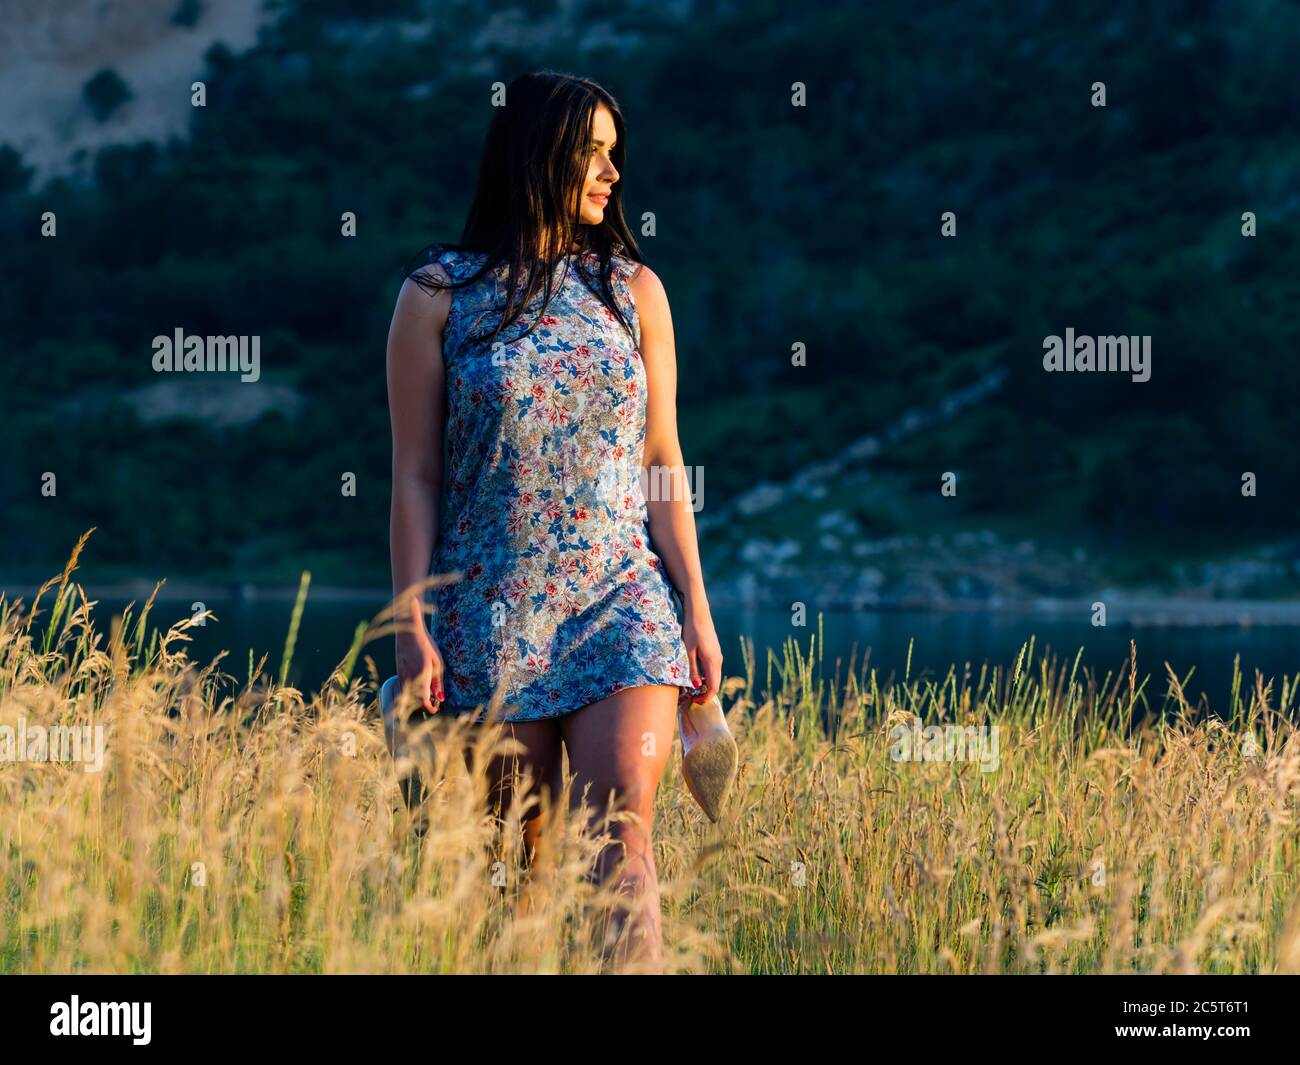 Teengirl going go returning home watching sunrise in distance walking barefeet on Summer grassfield tall grass holding high-heels shoes in hands Stock Photo